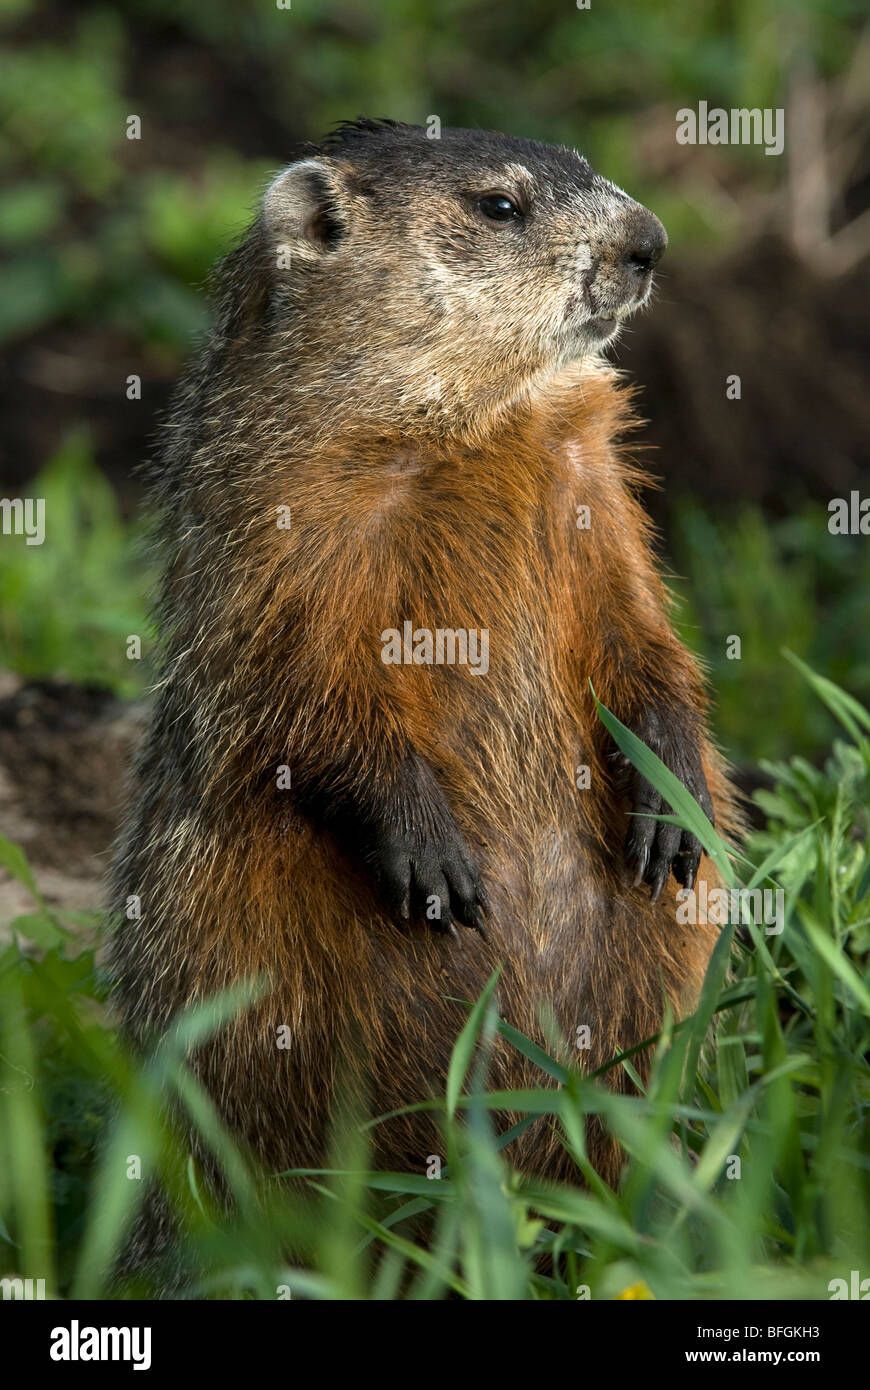 Groundhog (Marmota monax) sitting in summer meadow, Ontario, Canada - Stock Image